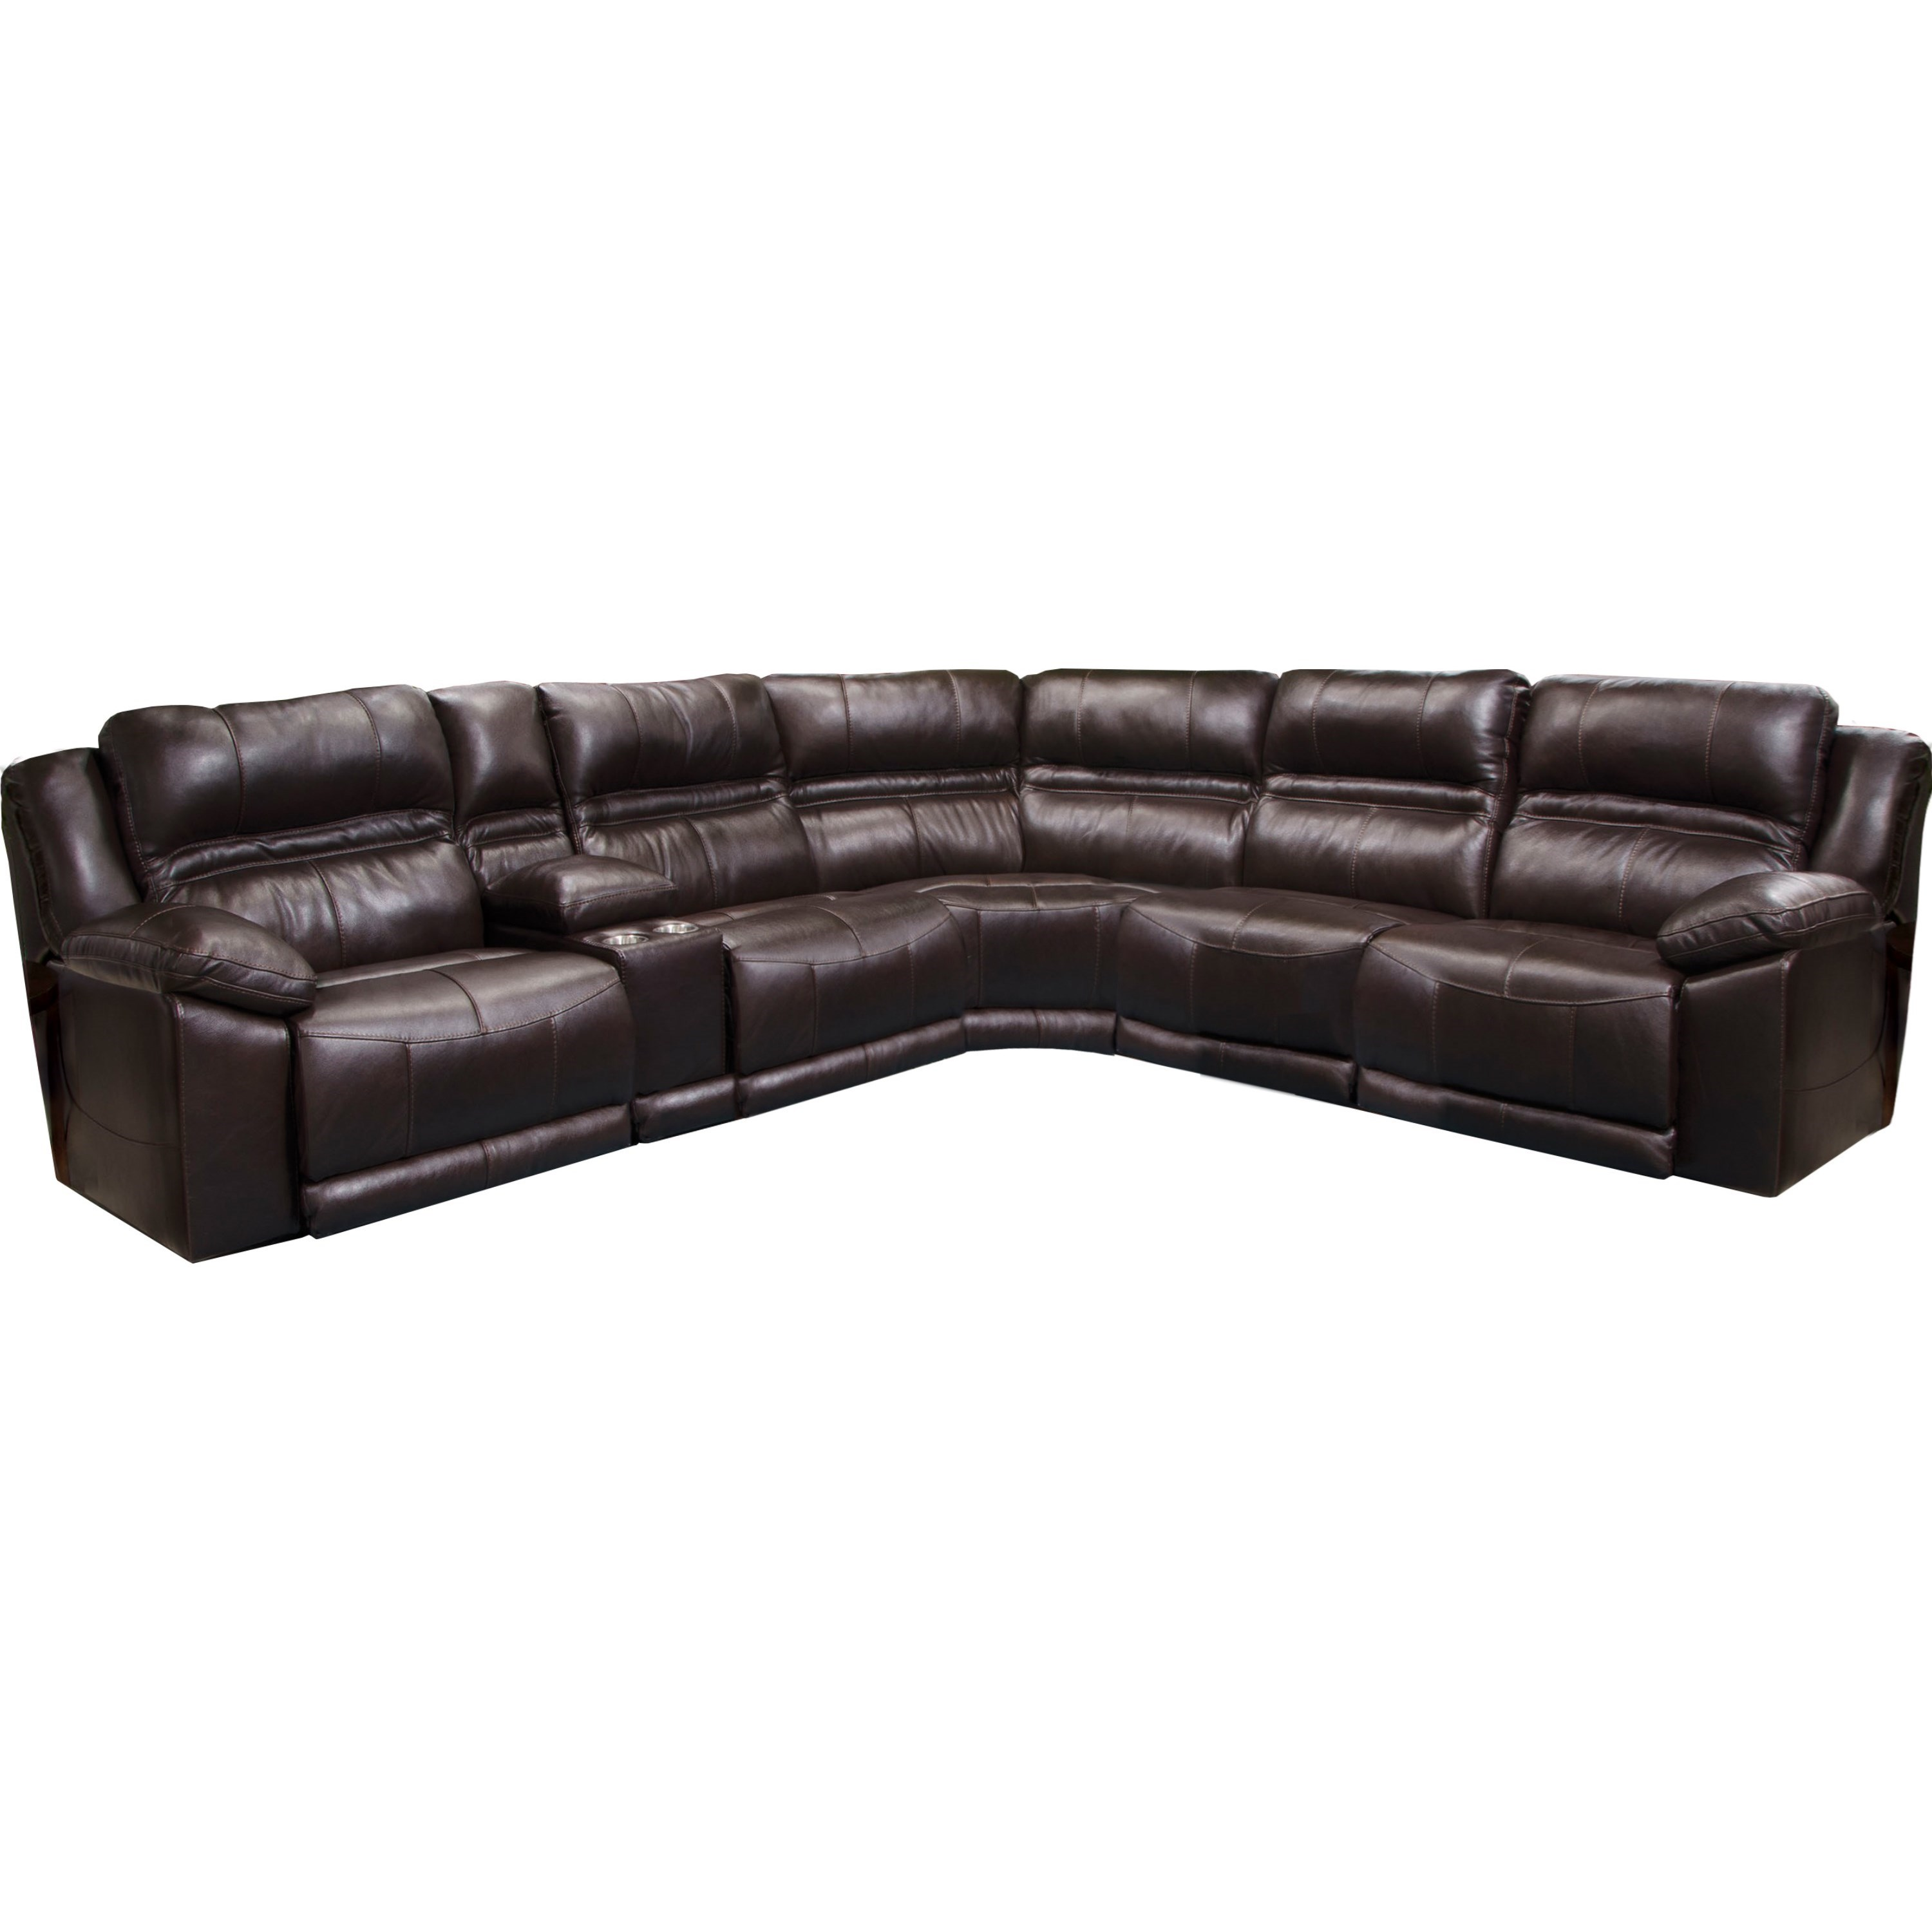 Five Piece Power Reclining Sectional Sofa